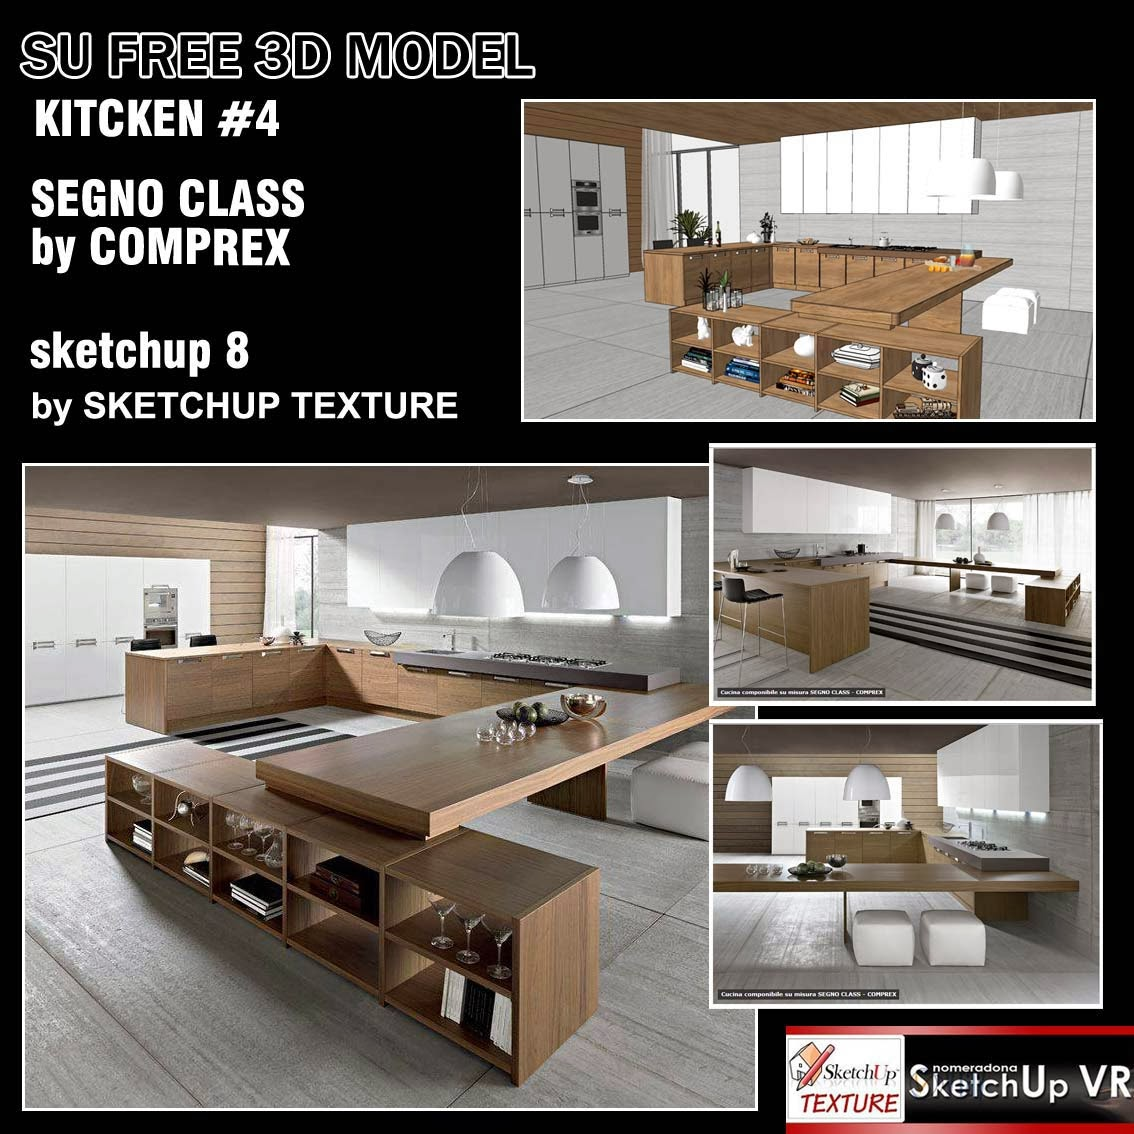 Sketchup texture sketchup model kitchen for Decor 3d model